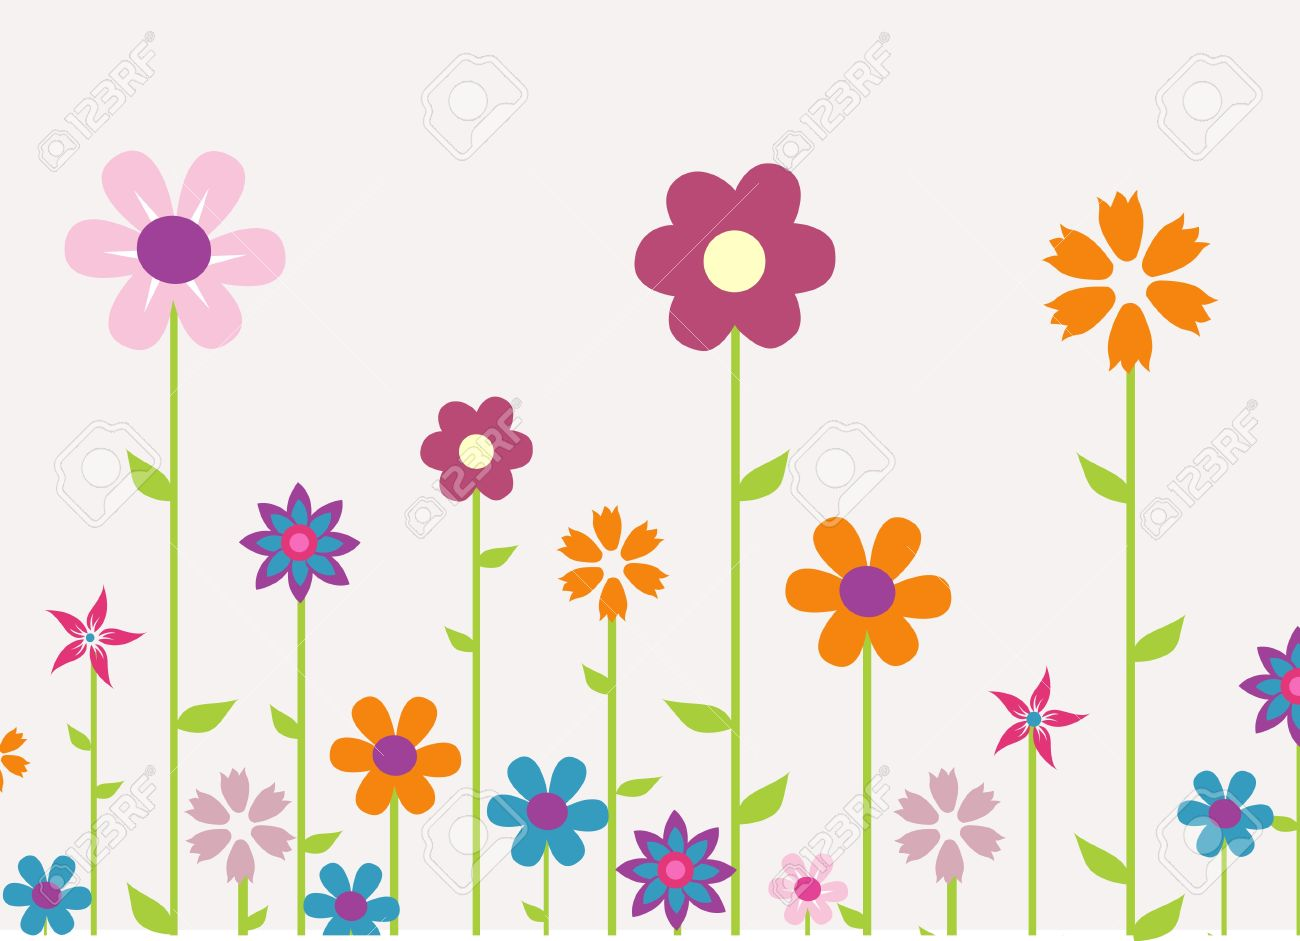 Colorful Spring Flowers Vector Illustration Royalty Free Cliparts Vectors And Stock Illustration Image 18001646